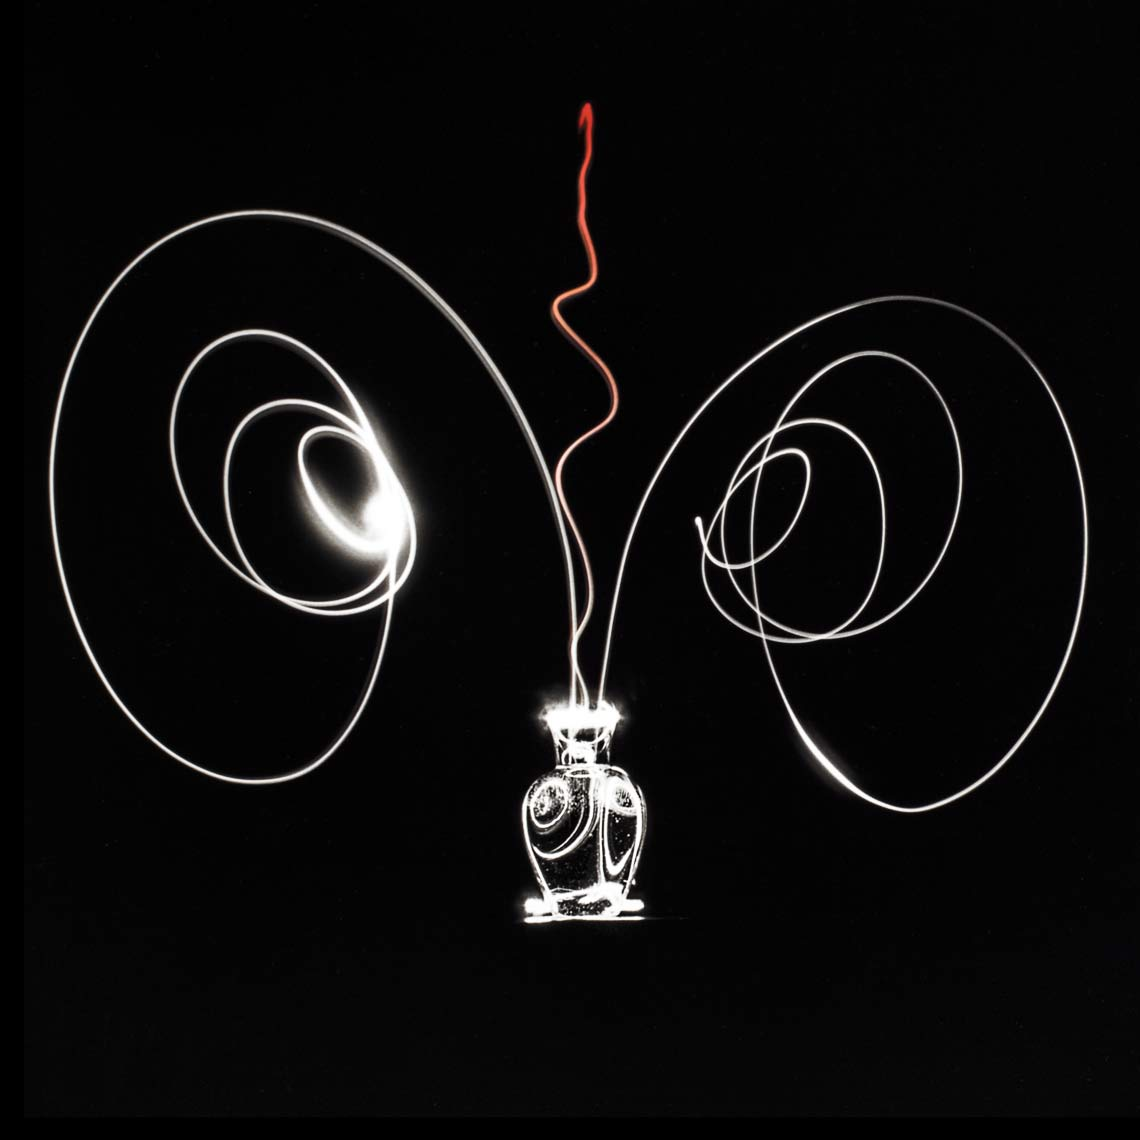 David Lebe; Scribble 1, 1987, light drawing, hand colored photograph